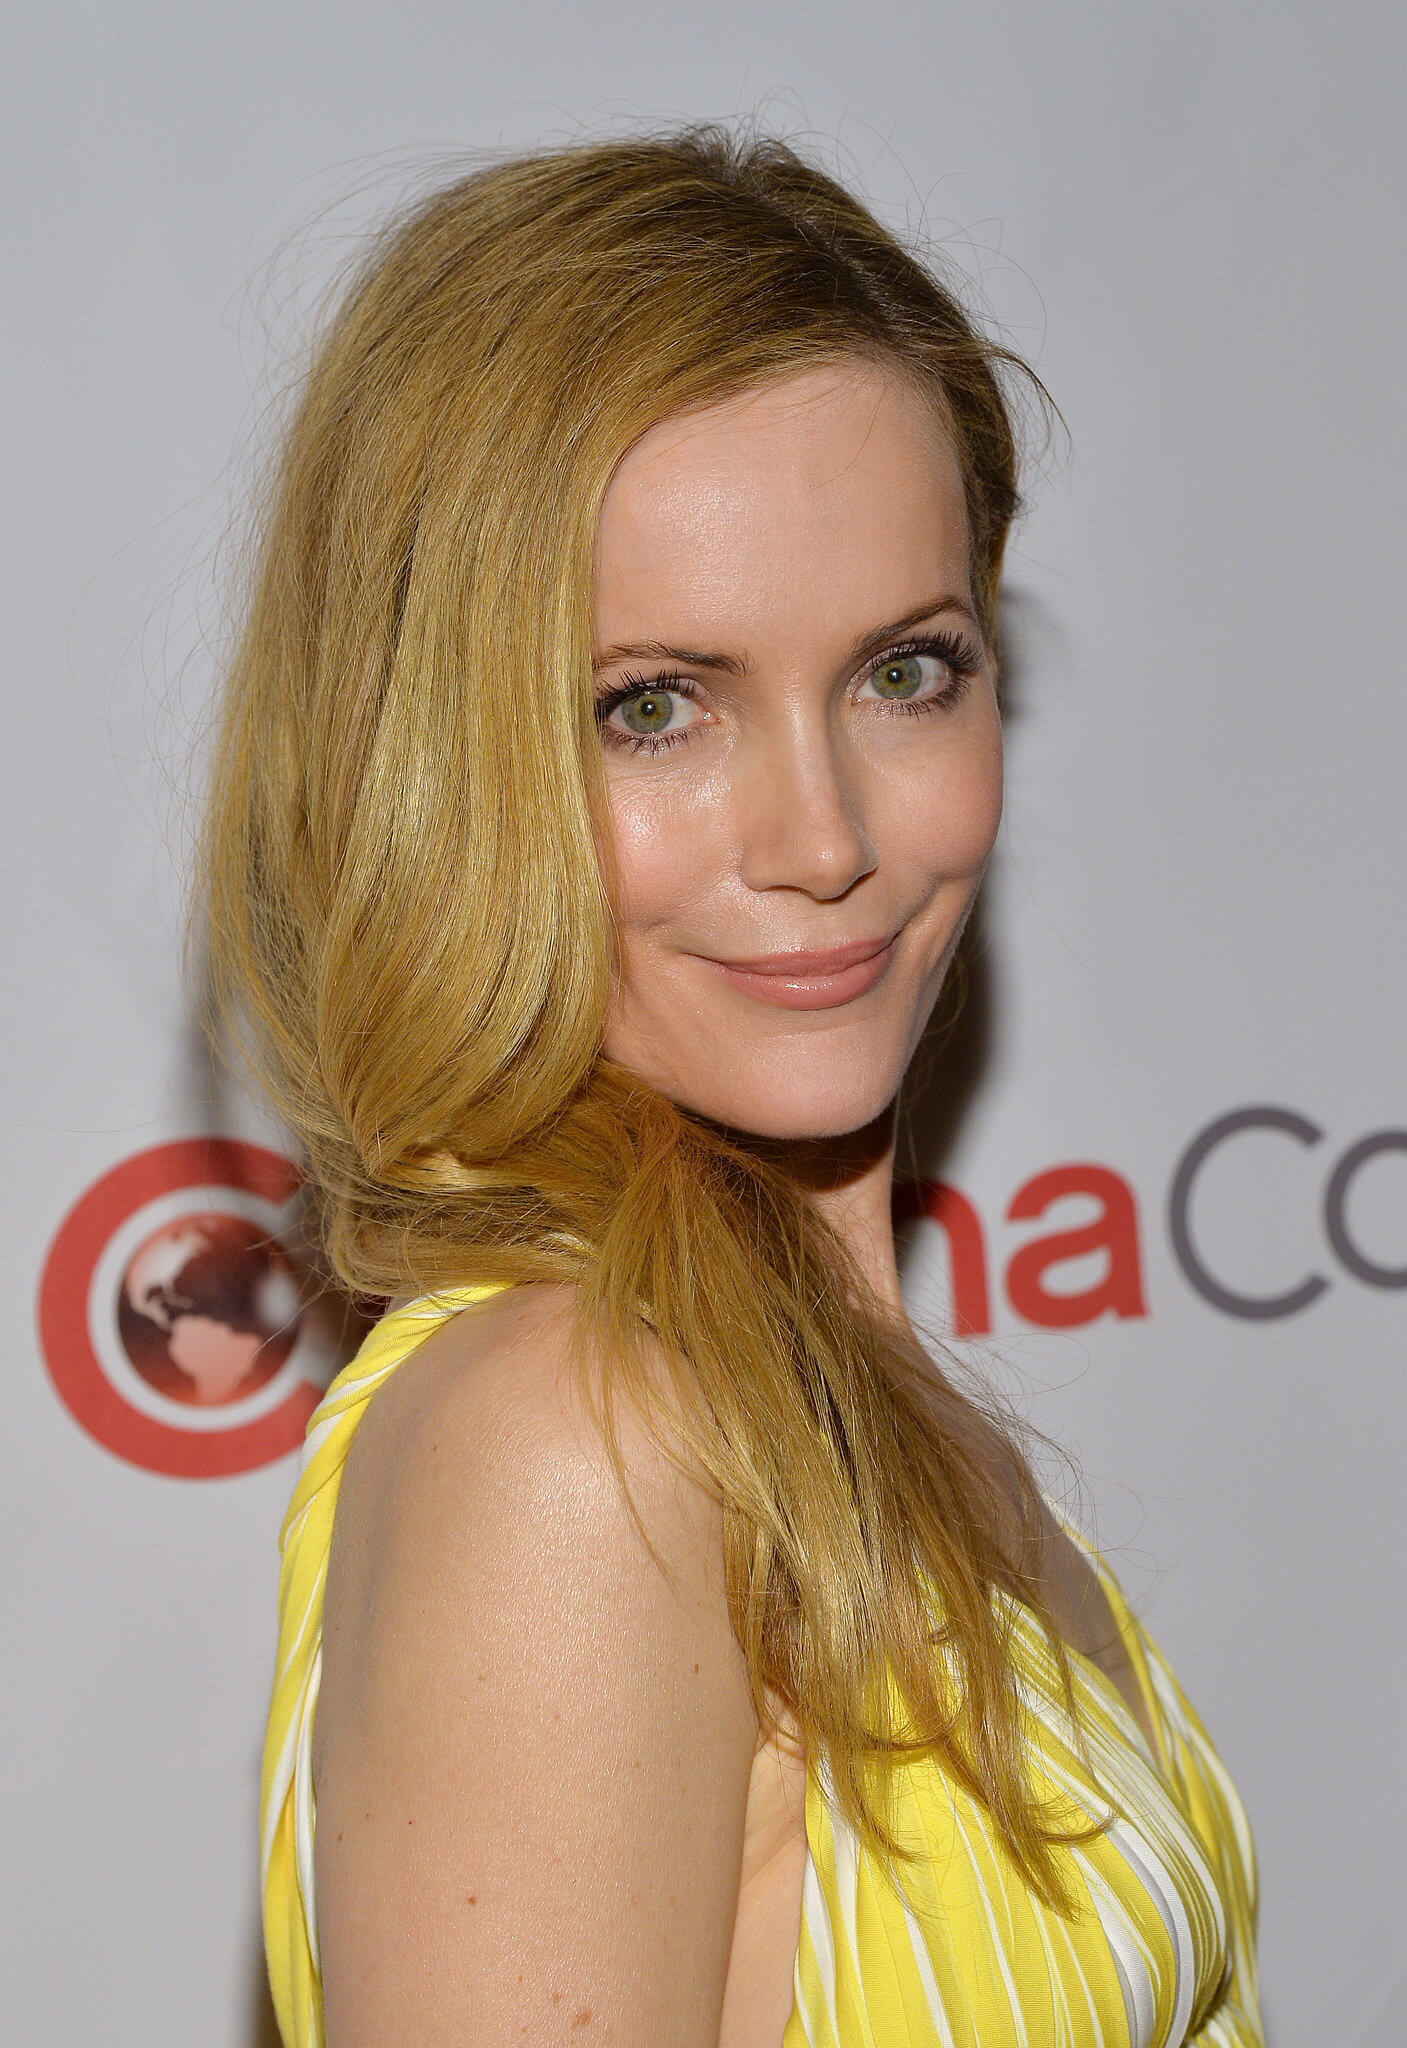 61 Hot Pictures Of Leslie Mann Which Expose Her Sexy Hour